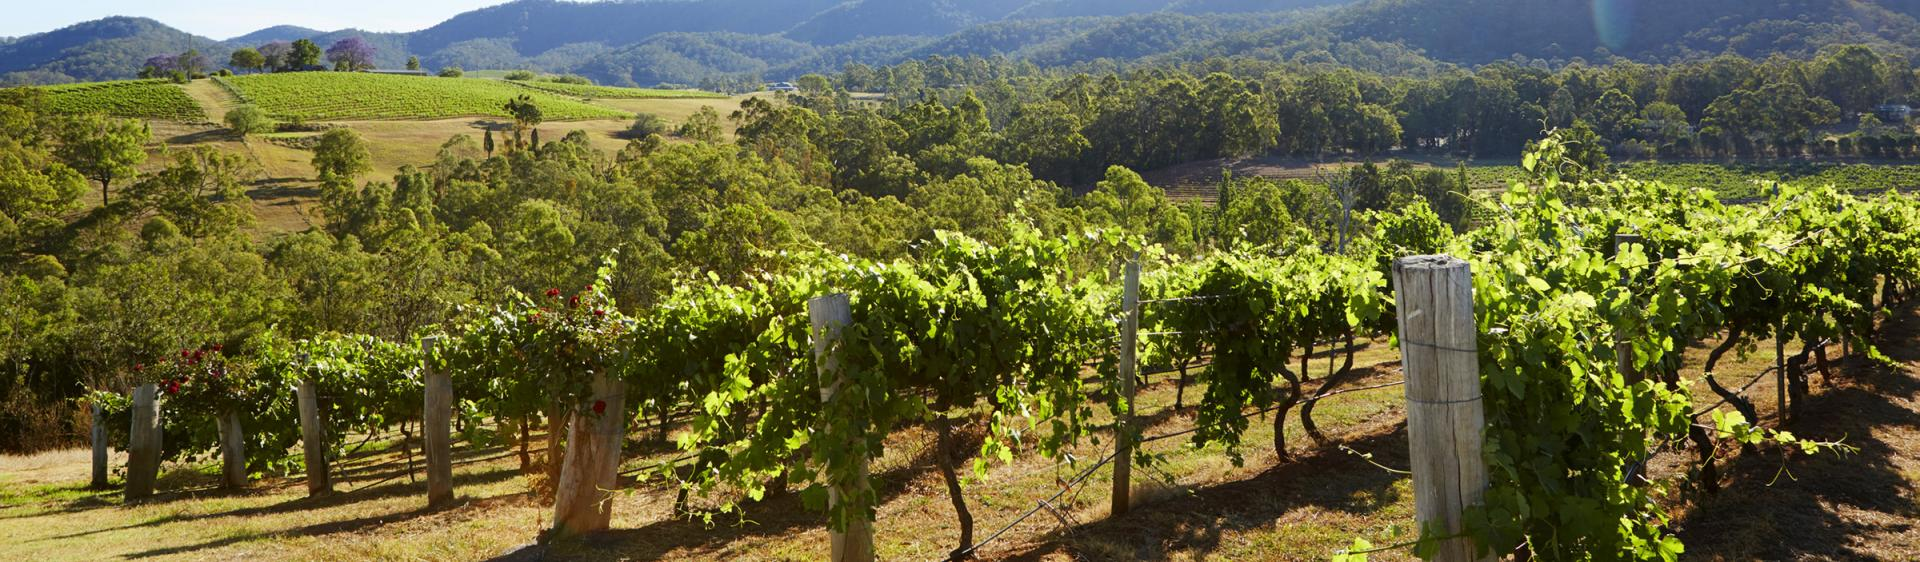 Audrey Wilkinson Vineyard, Pokolbin, Hunter Valley